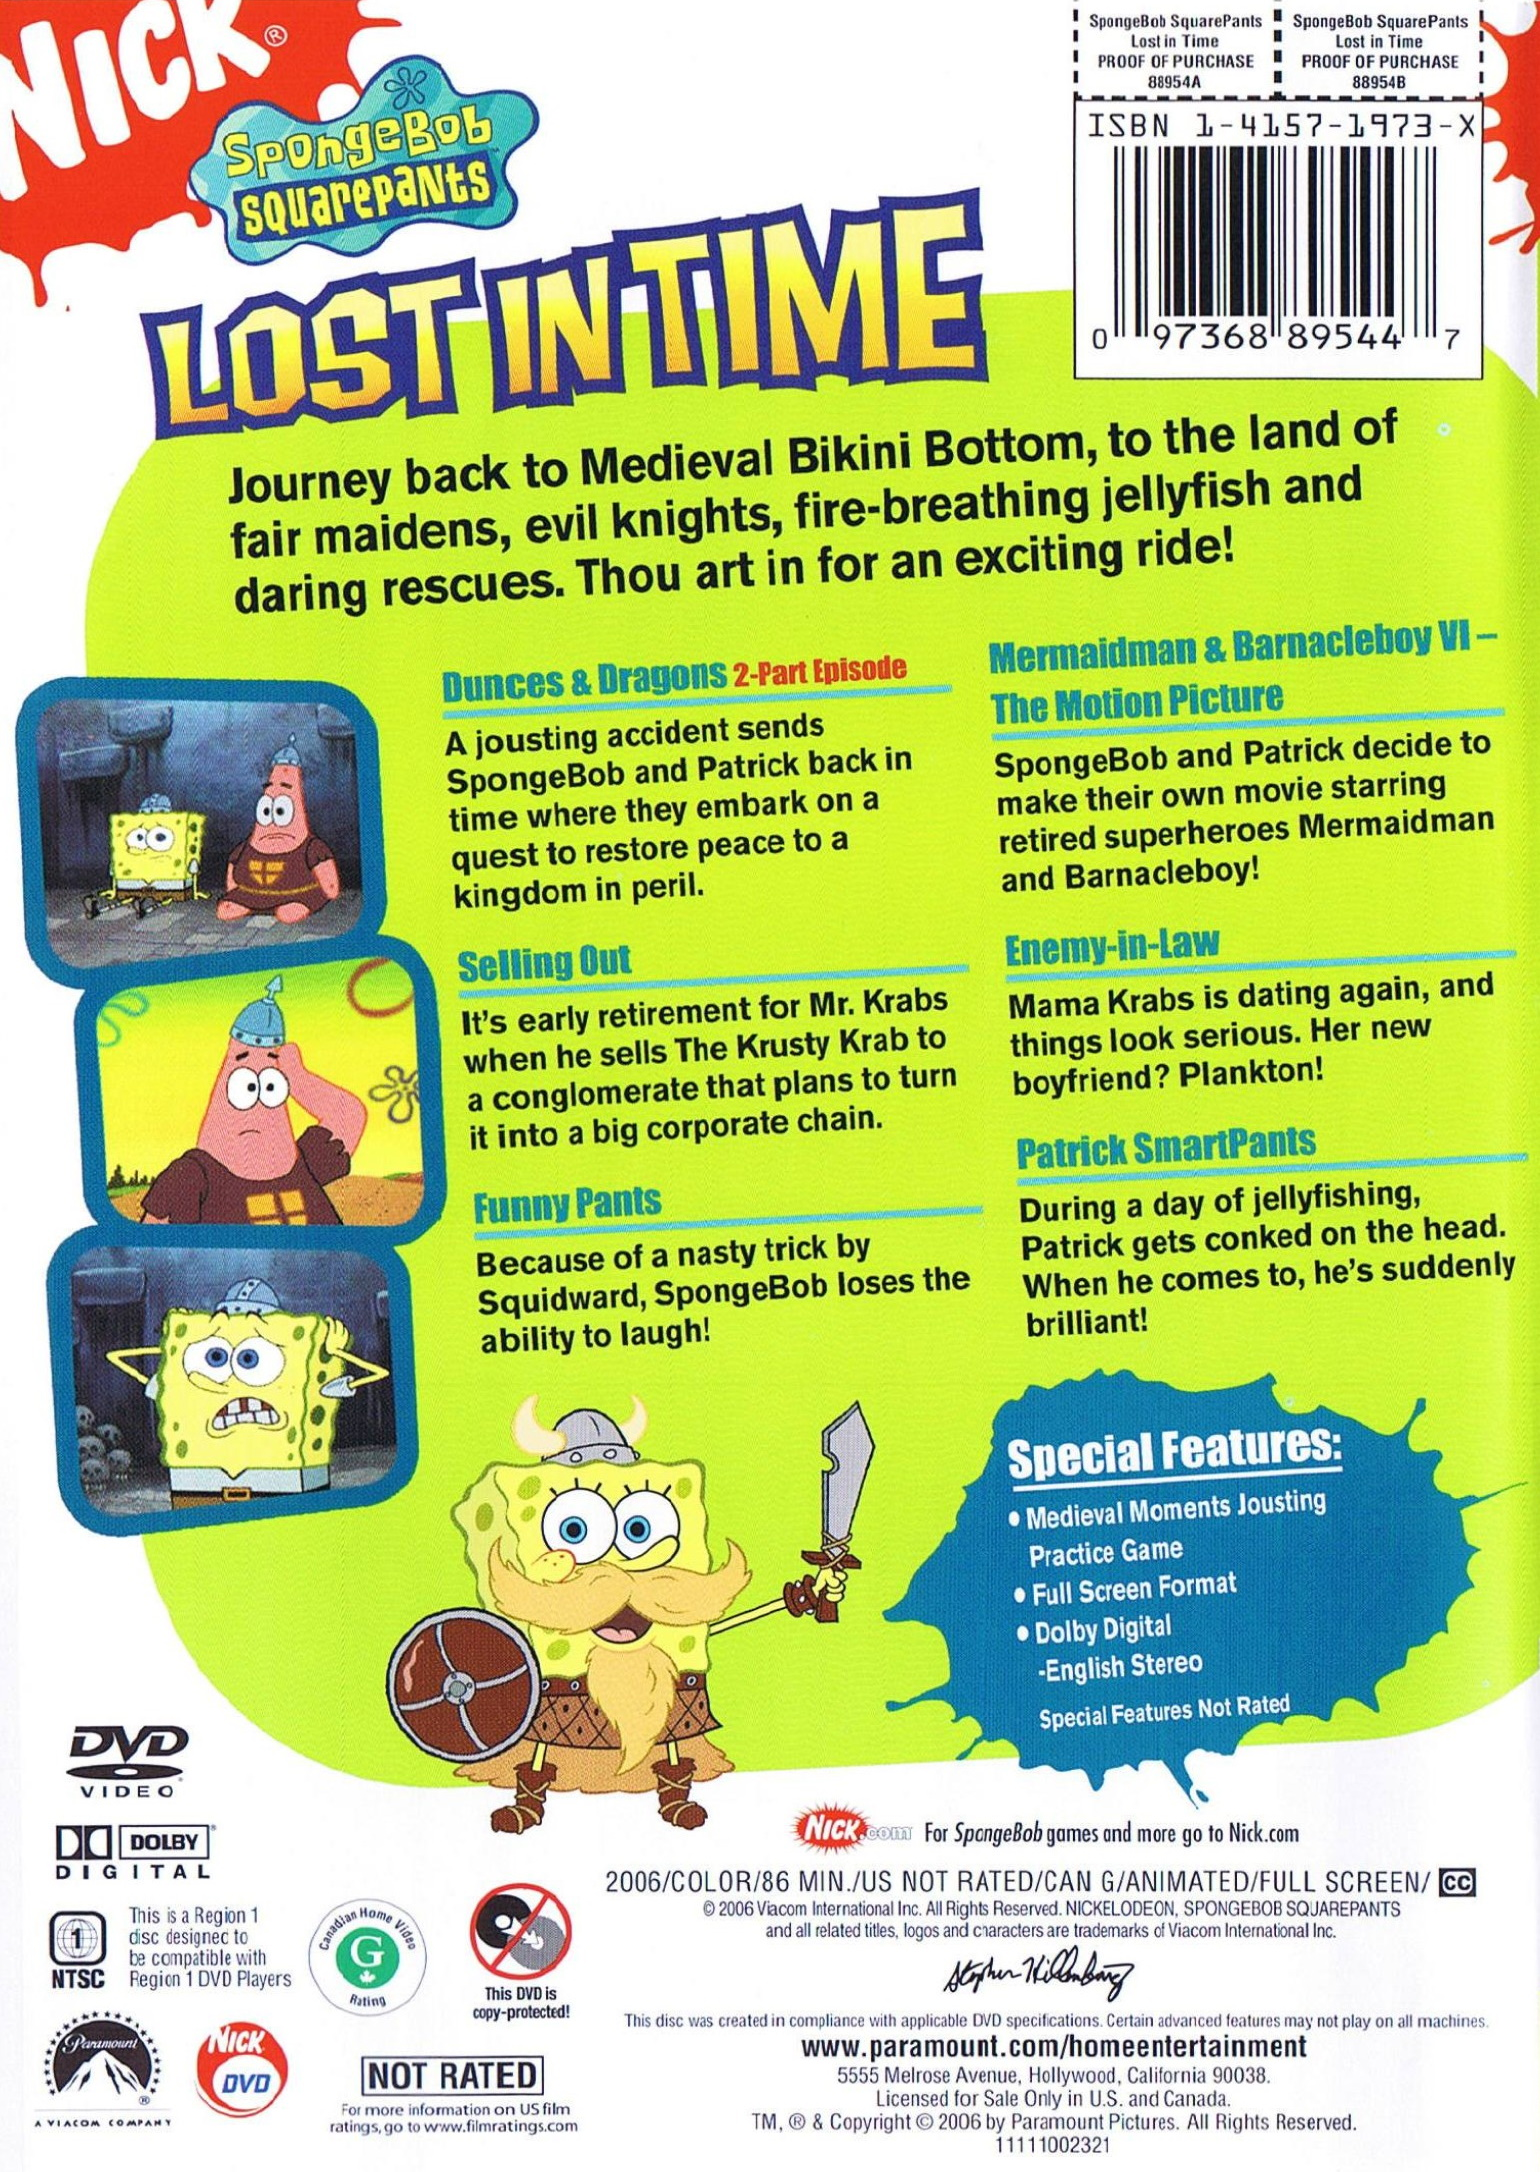 Lost in Time DVD Back Cover